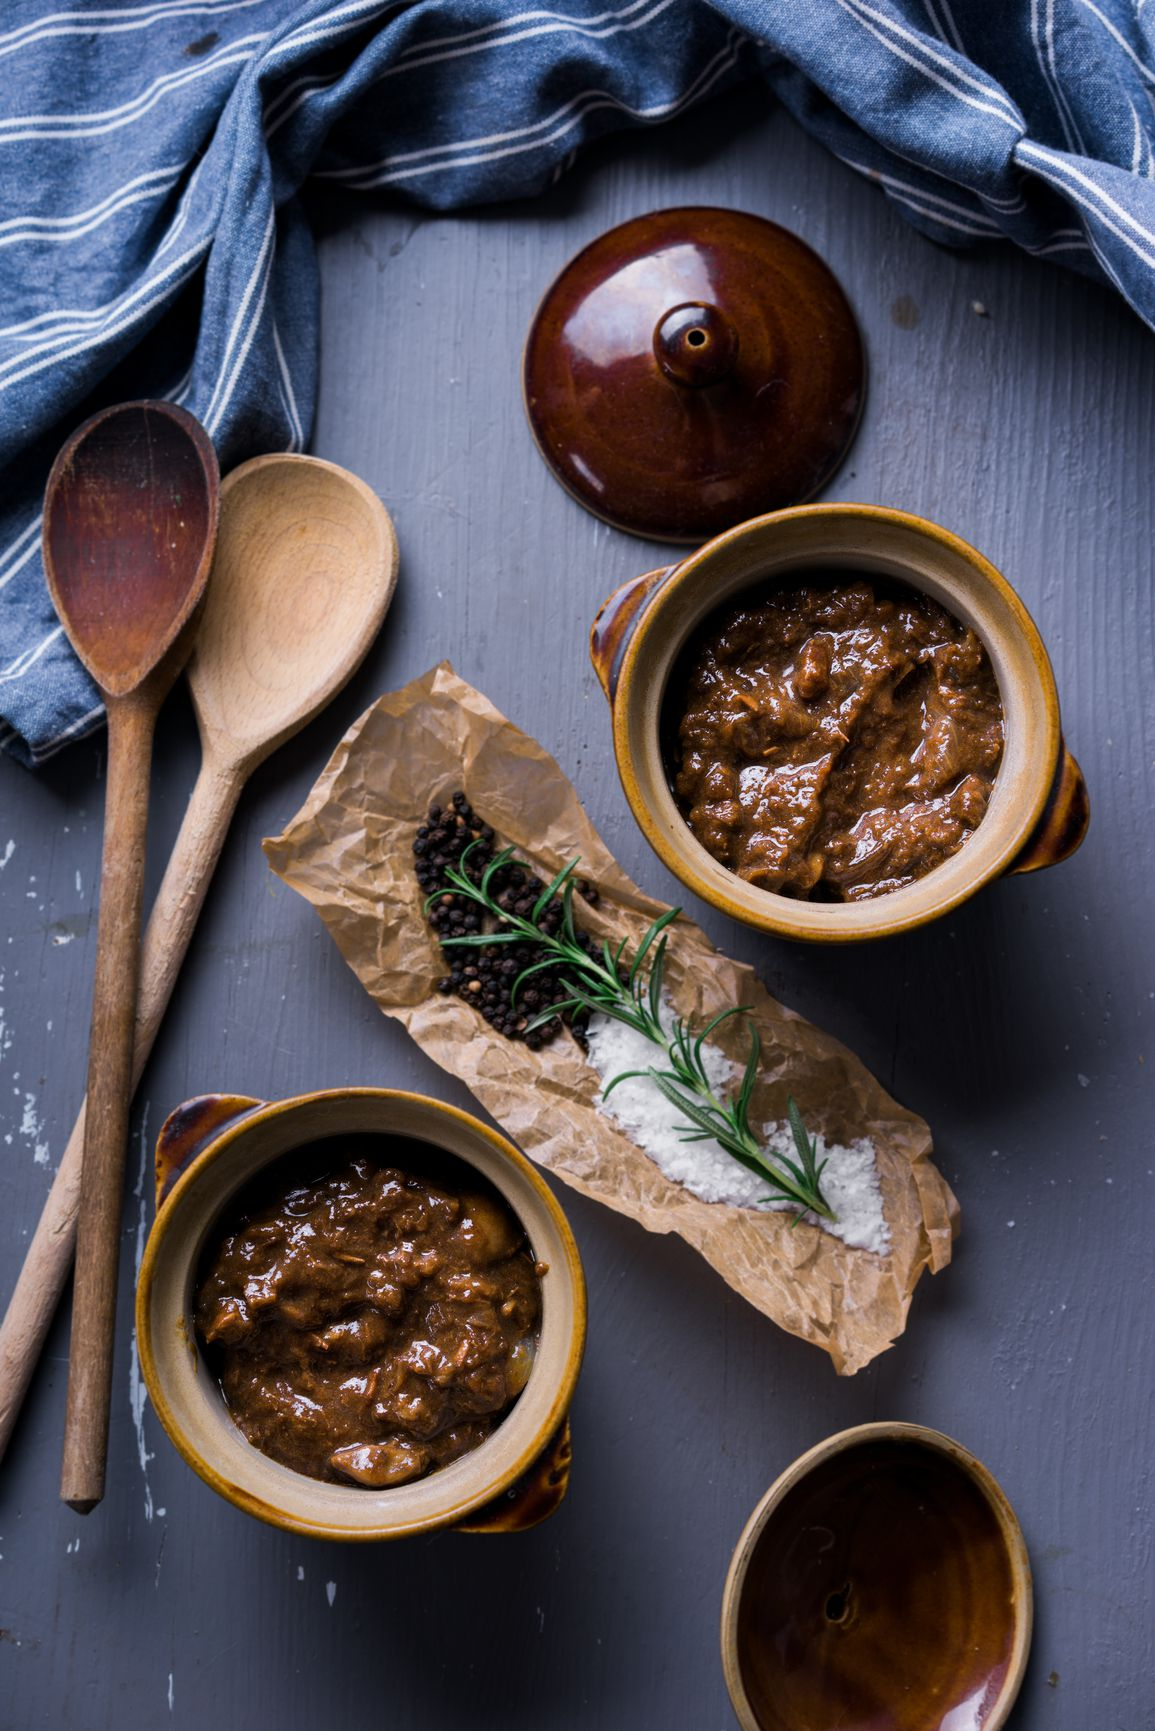 How to Make Stifatho, or Greek Beef and Onion Stew